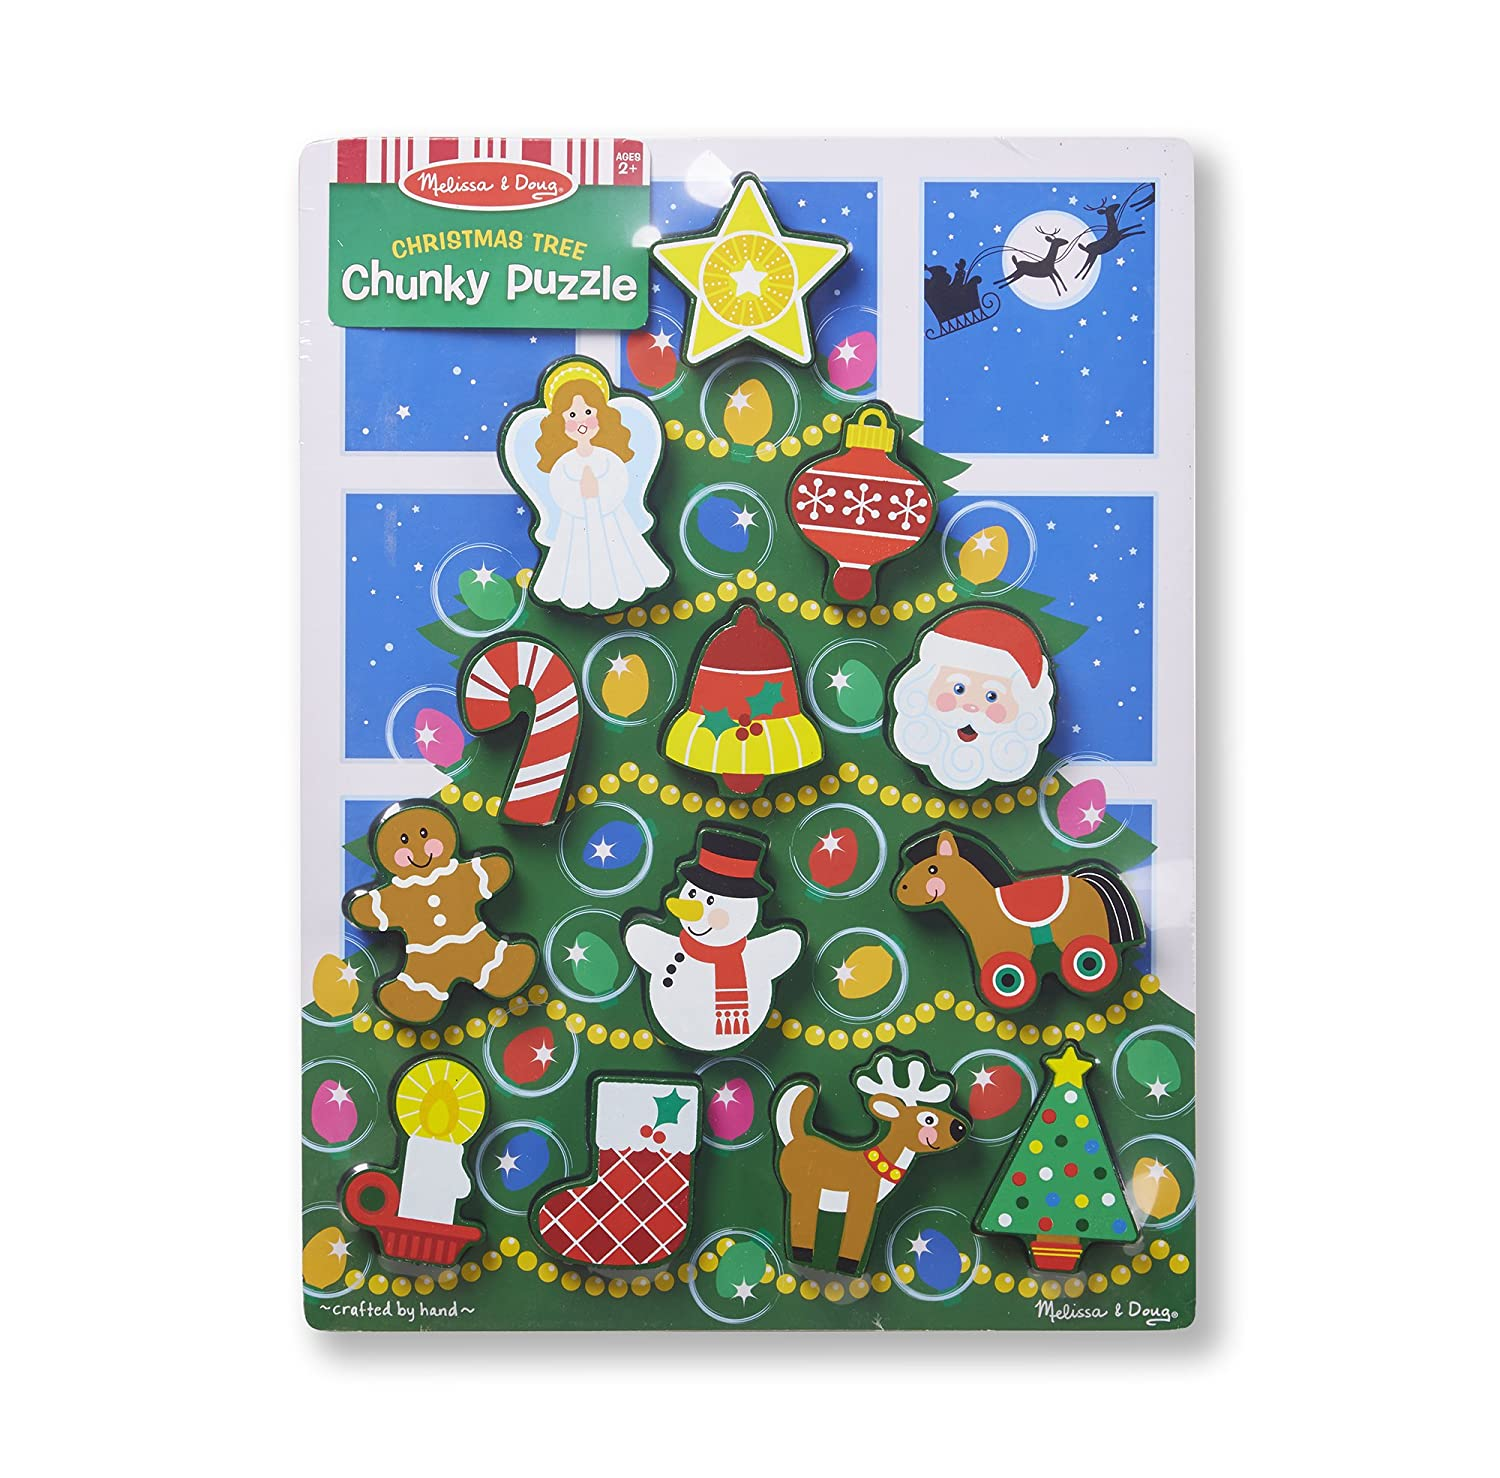 Amazon.com: Melissa & Doug Holiday Christmas Tree Wooden Chunky ...